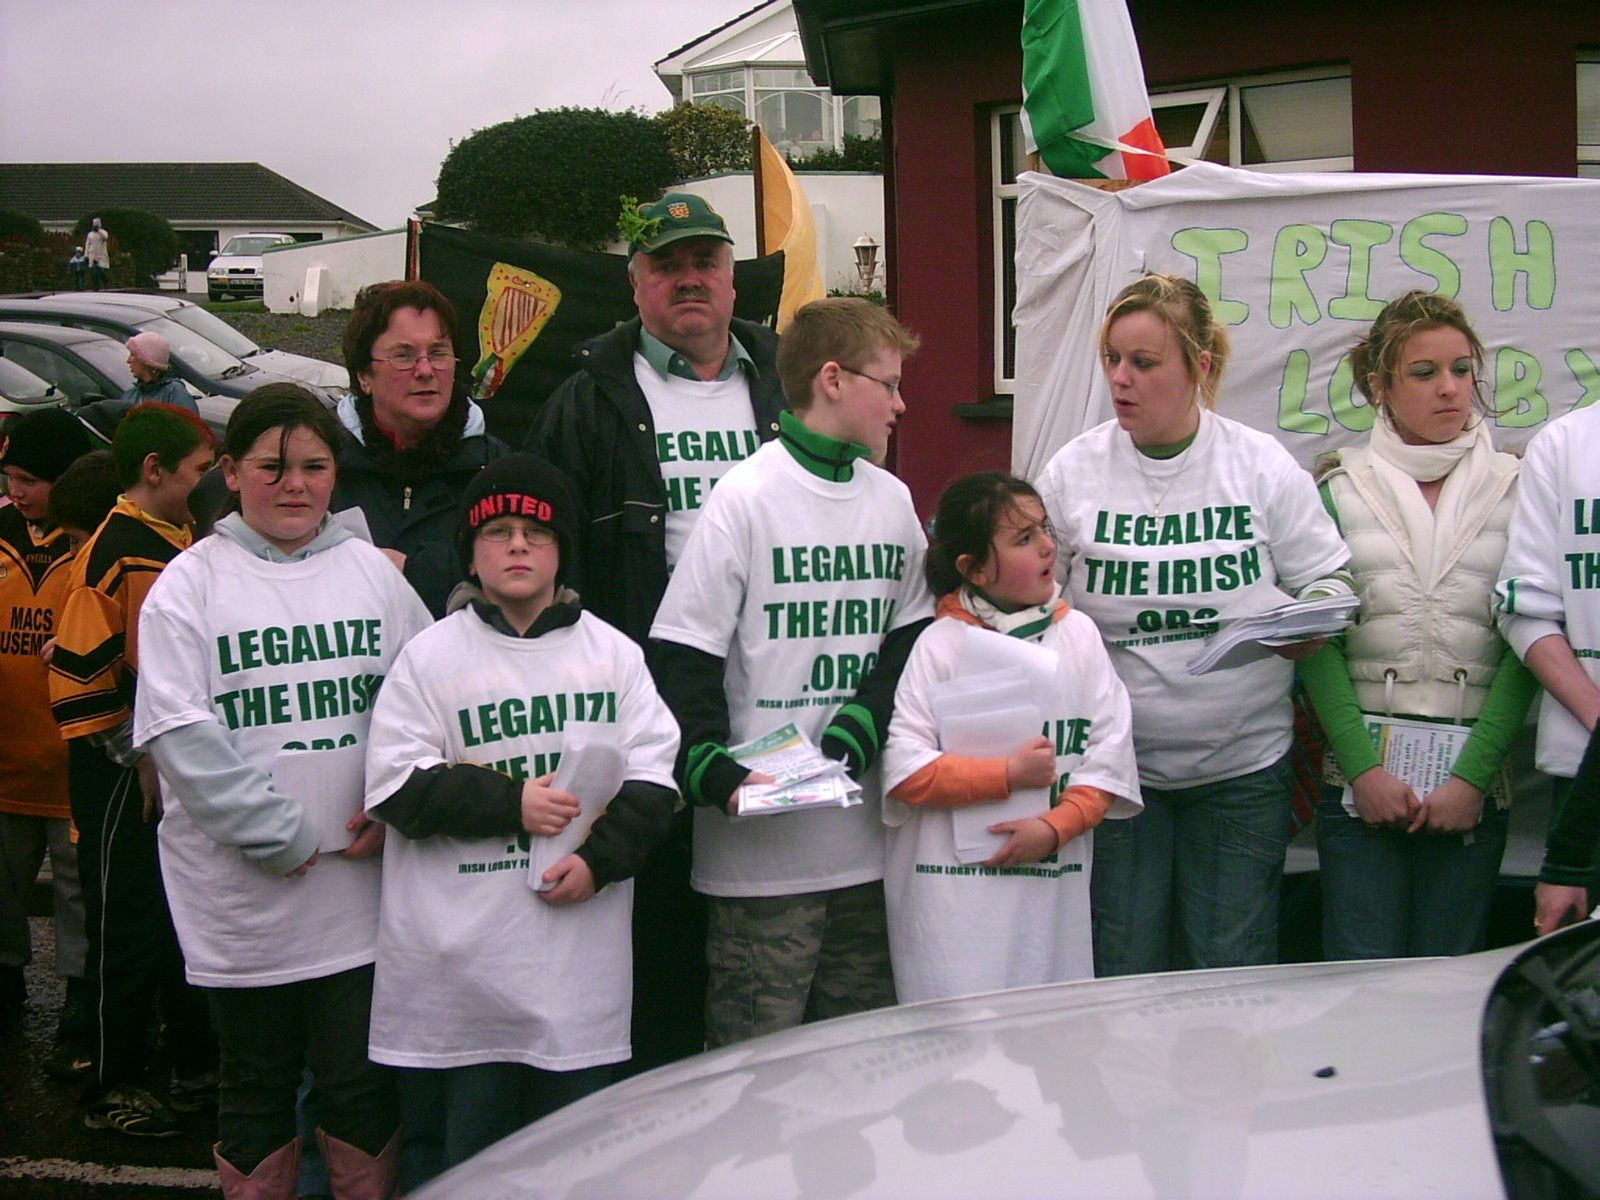 [FAMILIES+OF+THE+UNDOCUMENTED+MARCH+IN+ST+PATRICKS+DAY+PARADE+IN+DONEGAL]